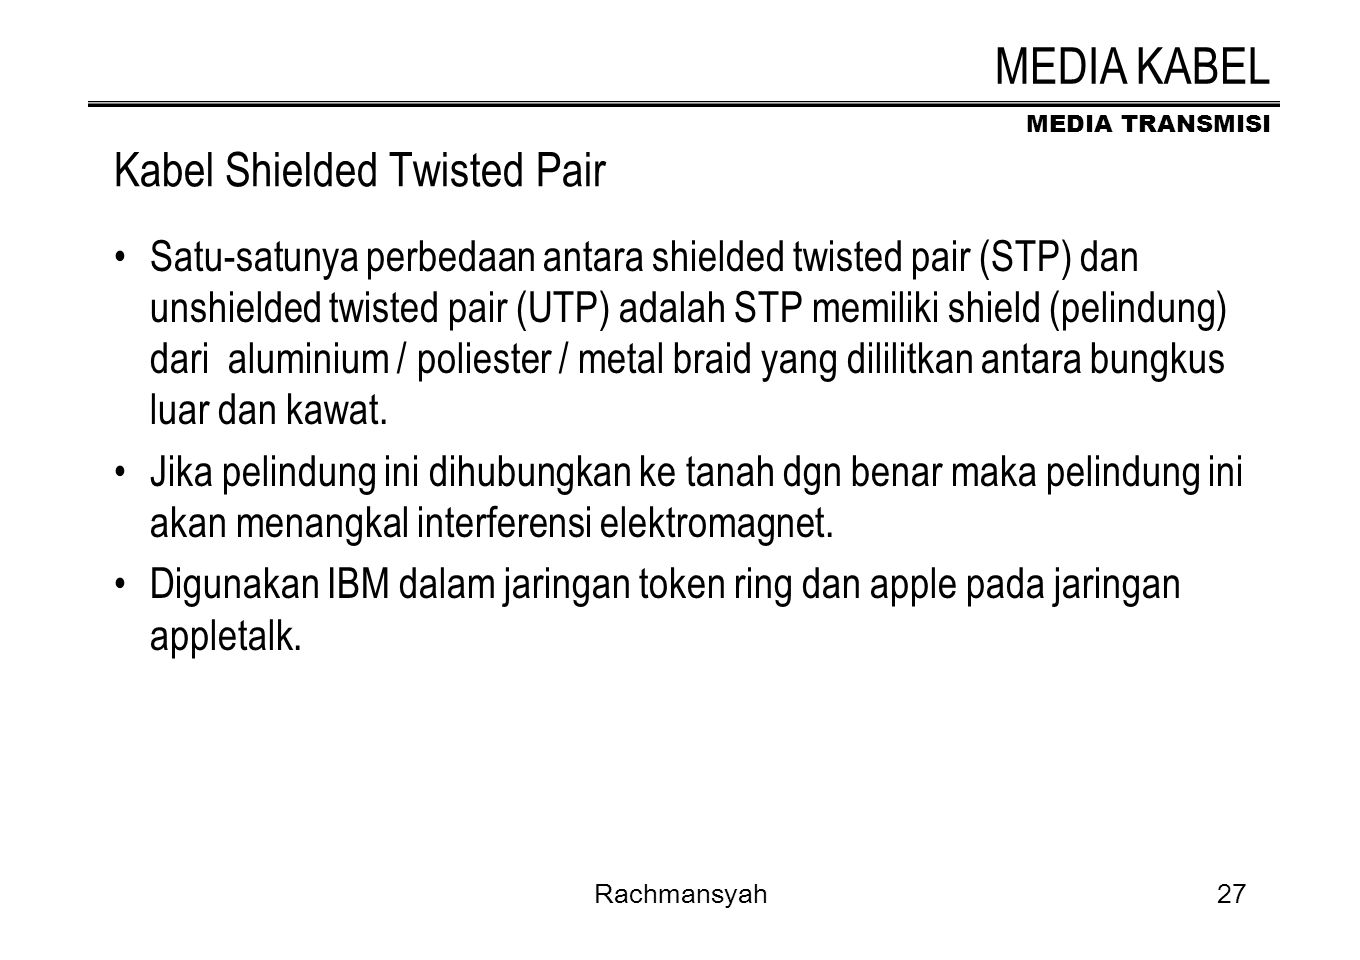 Kabel Shielded Twisted Pair